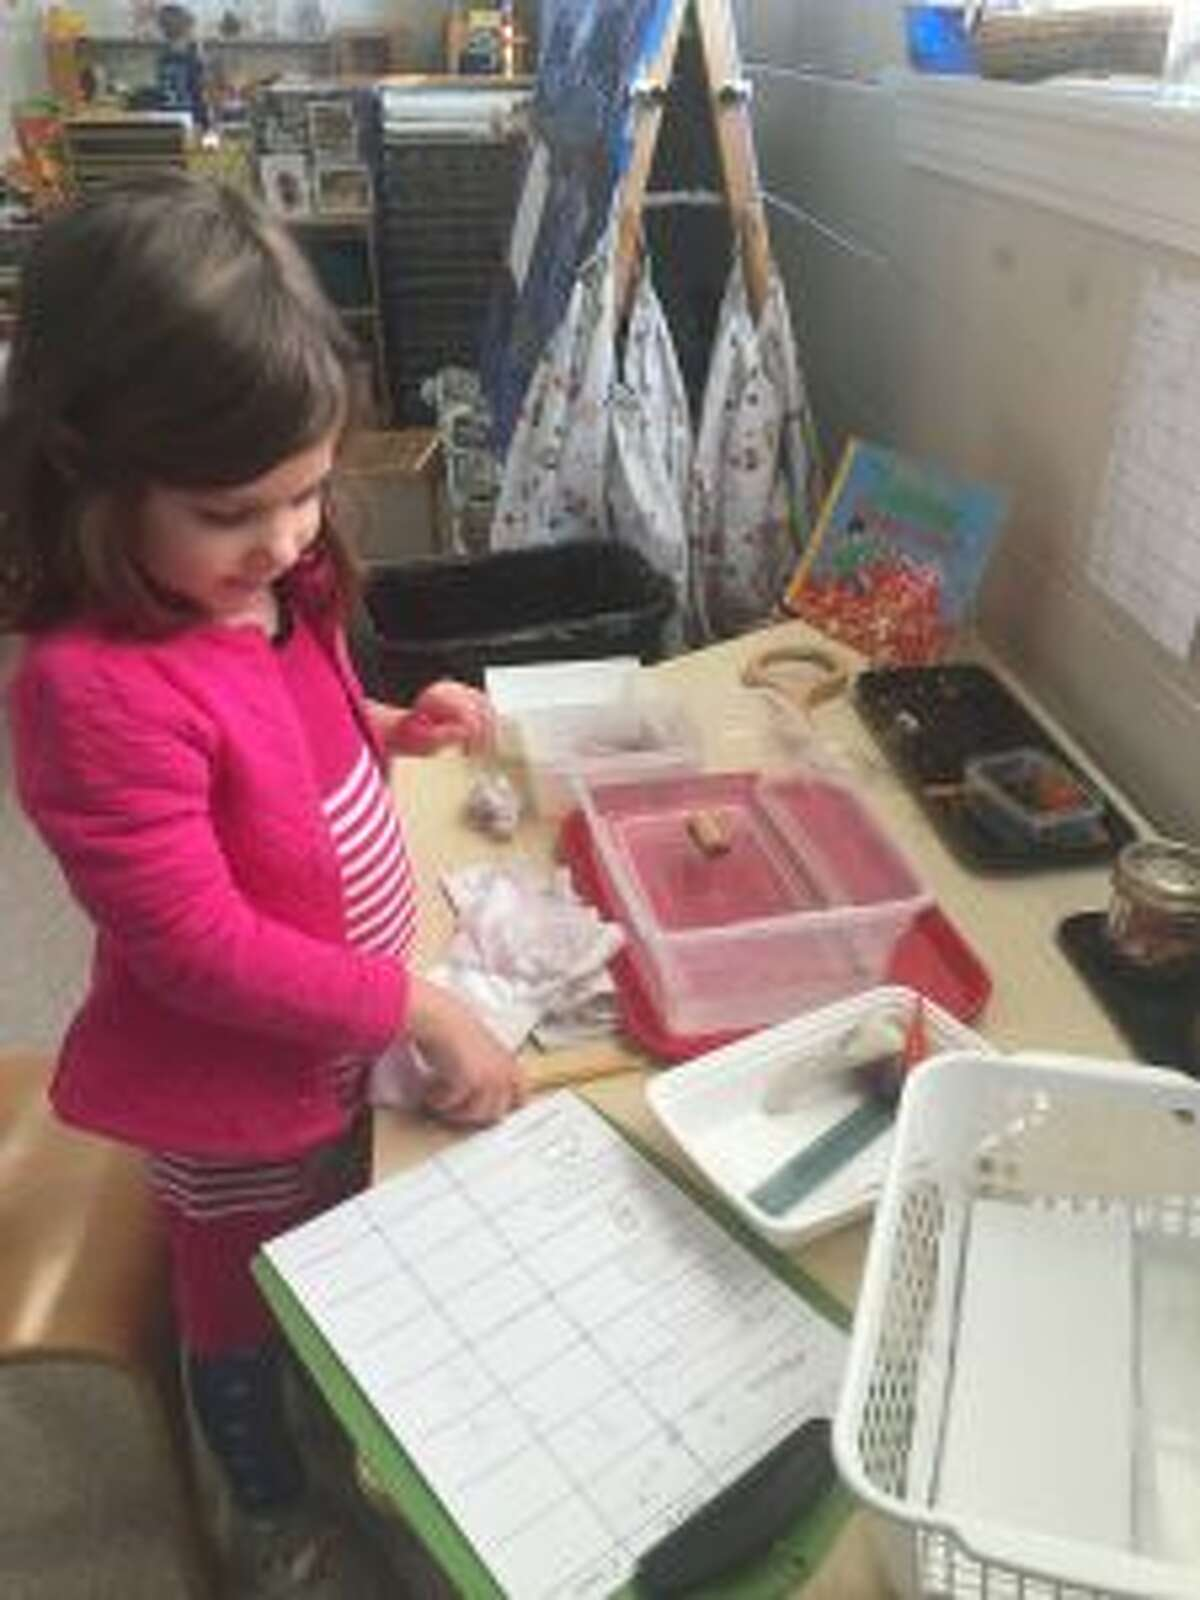 New Canaan: A preschooler plays with STEAM.